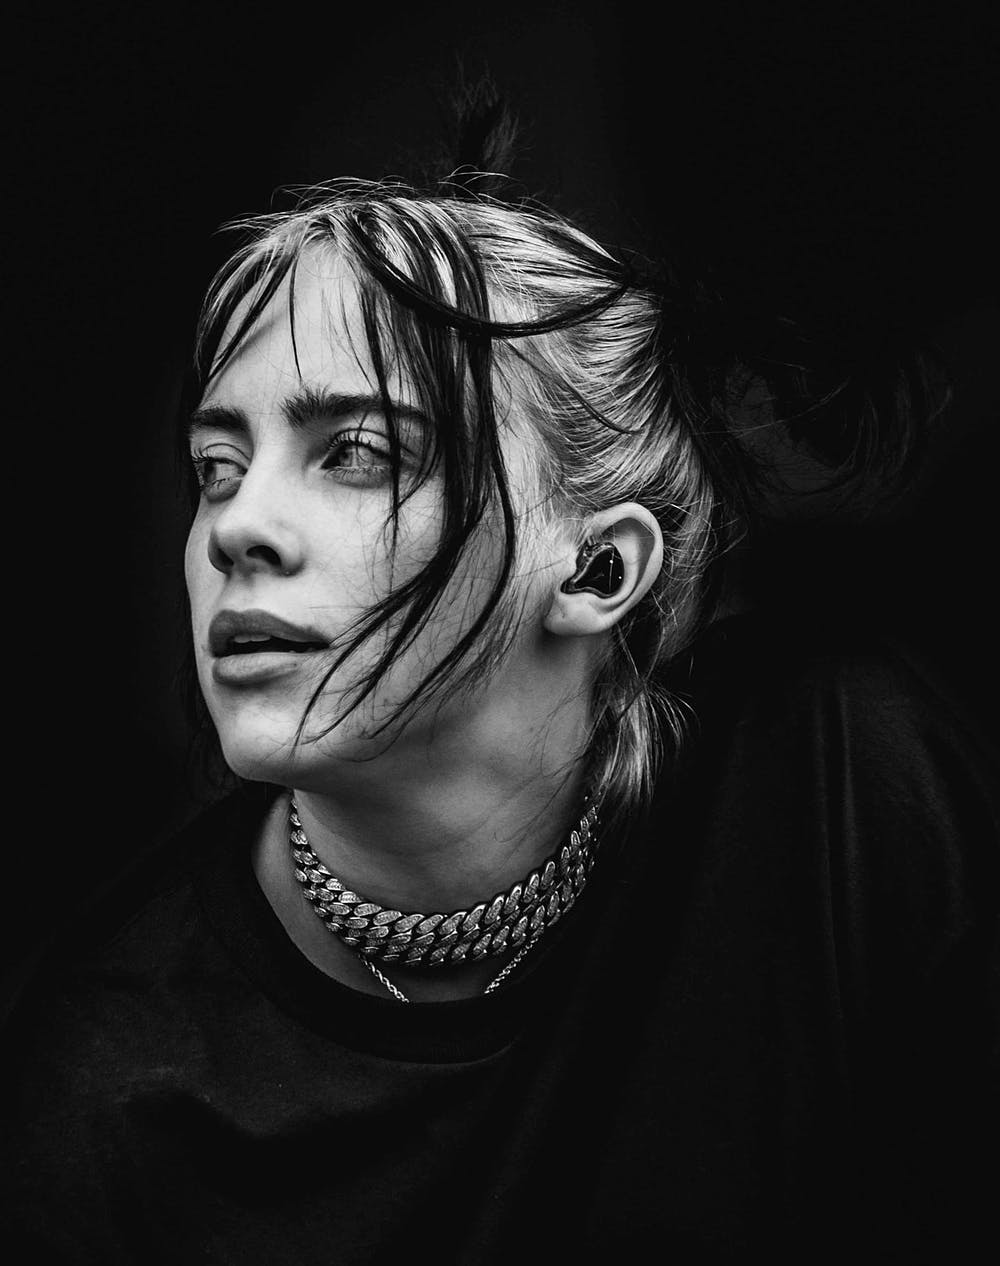 <p>Singer-songwriter Billie Eilish was only 13 years old when she first heard her music played on the radio.</p>